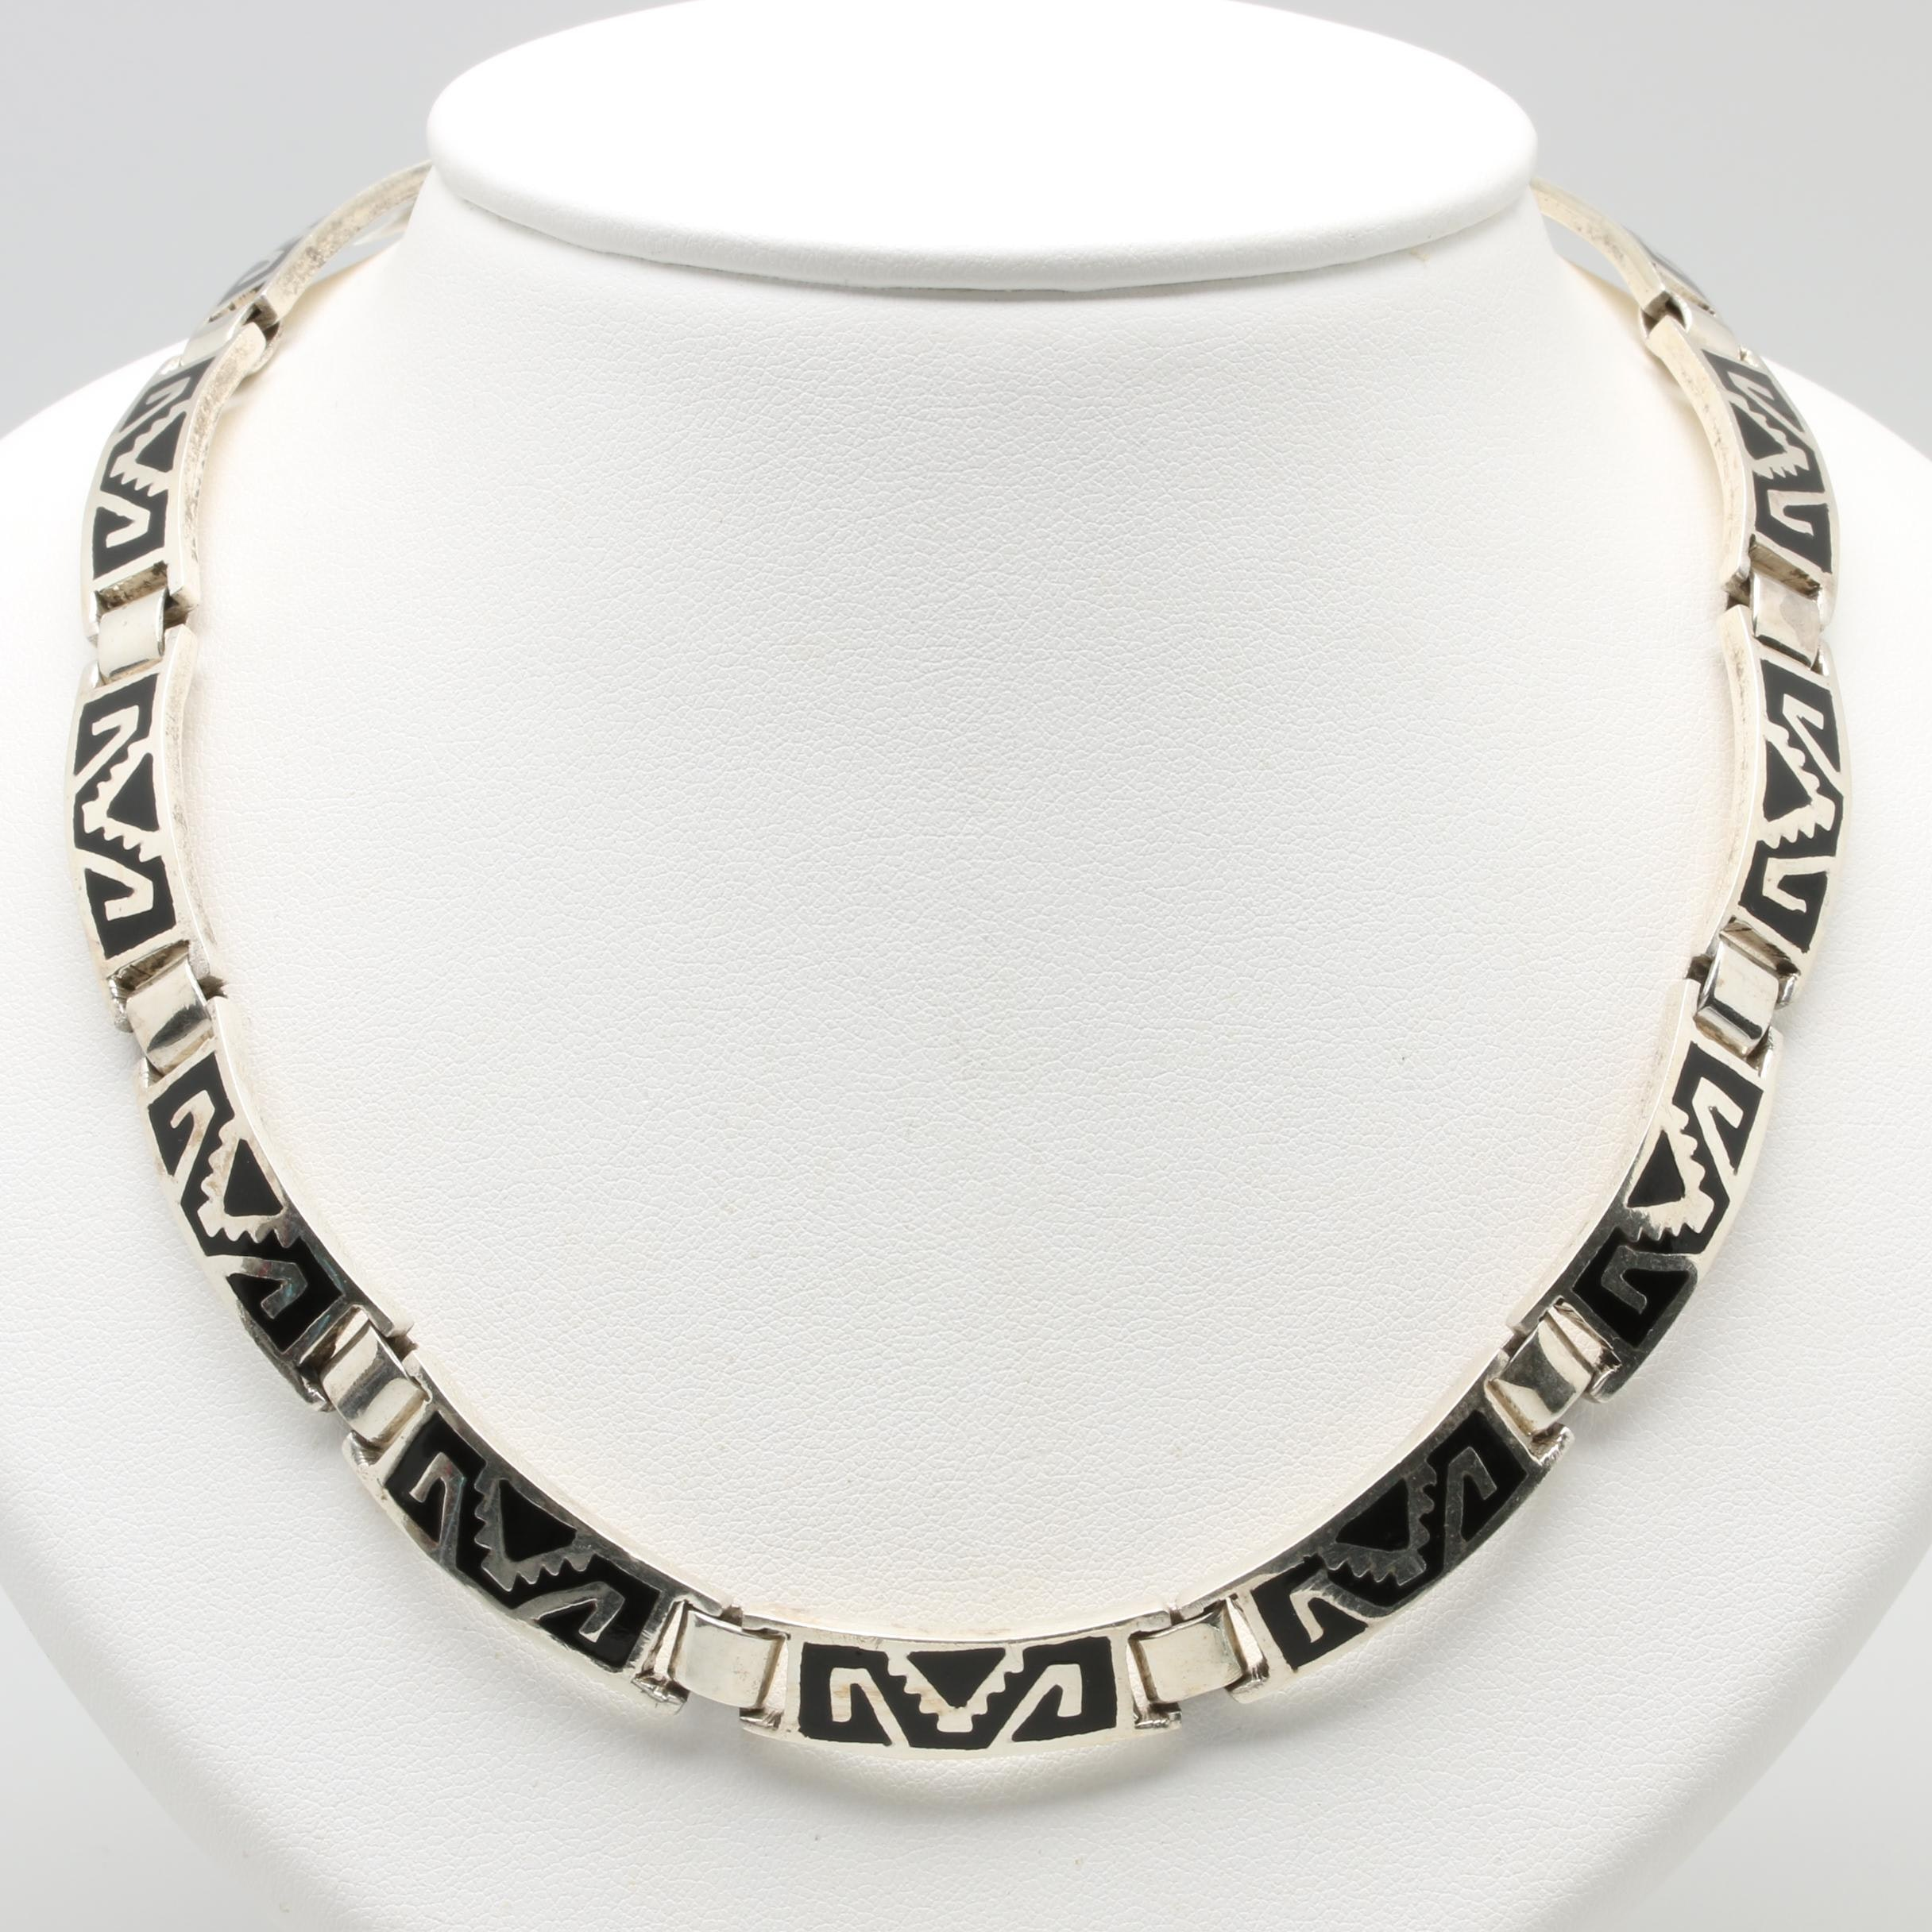 Mexican Made Sterling Silver Enamel Necklace